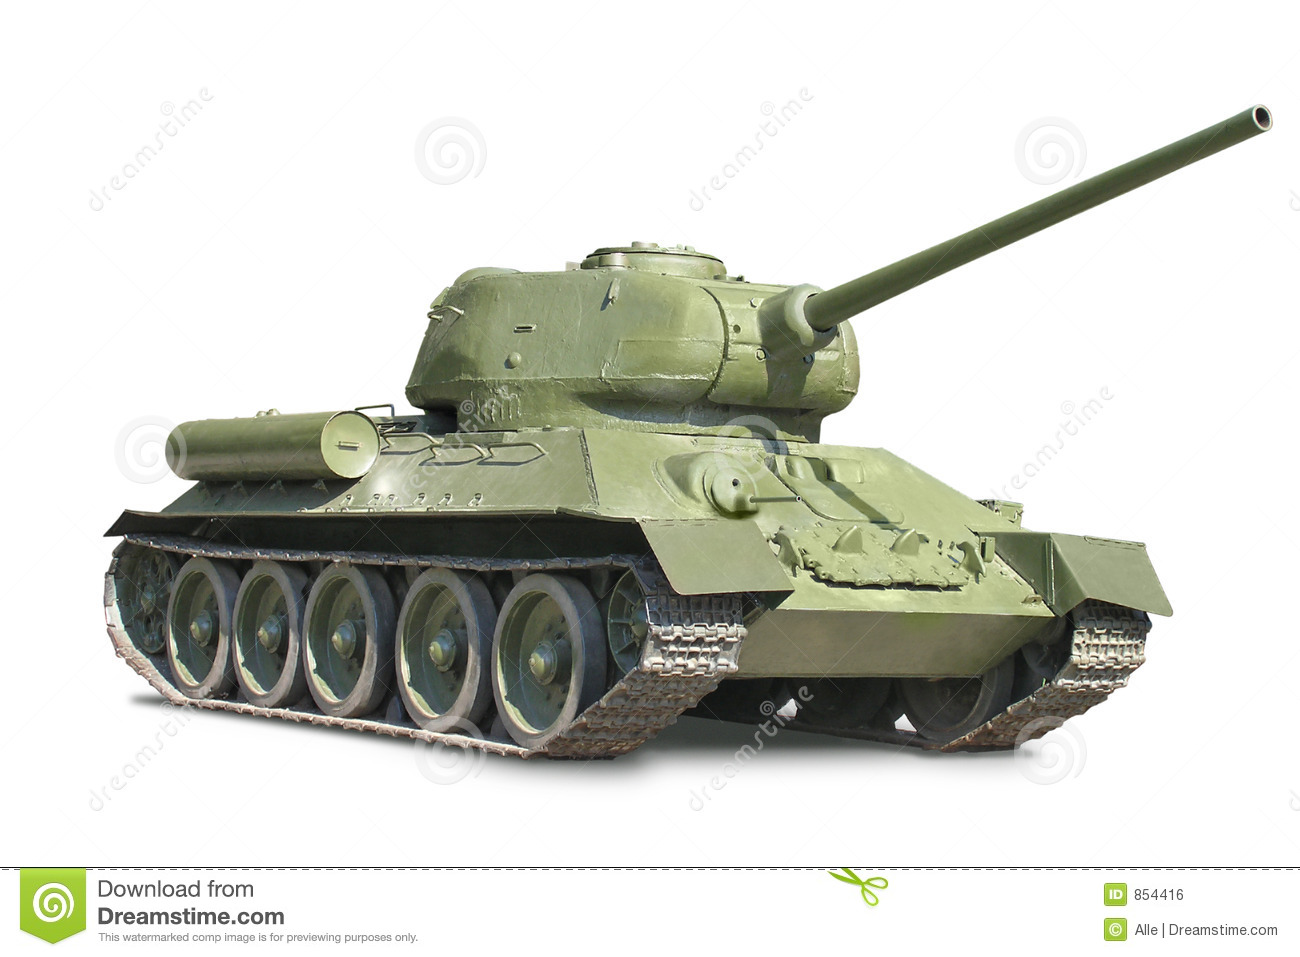 Soviet medium T-34 tank against white background.